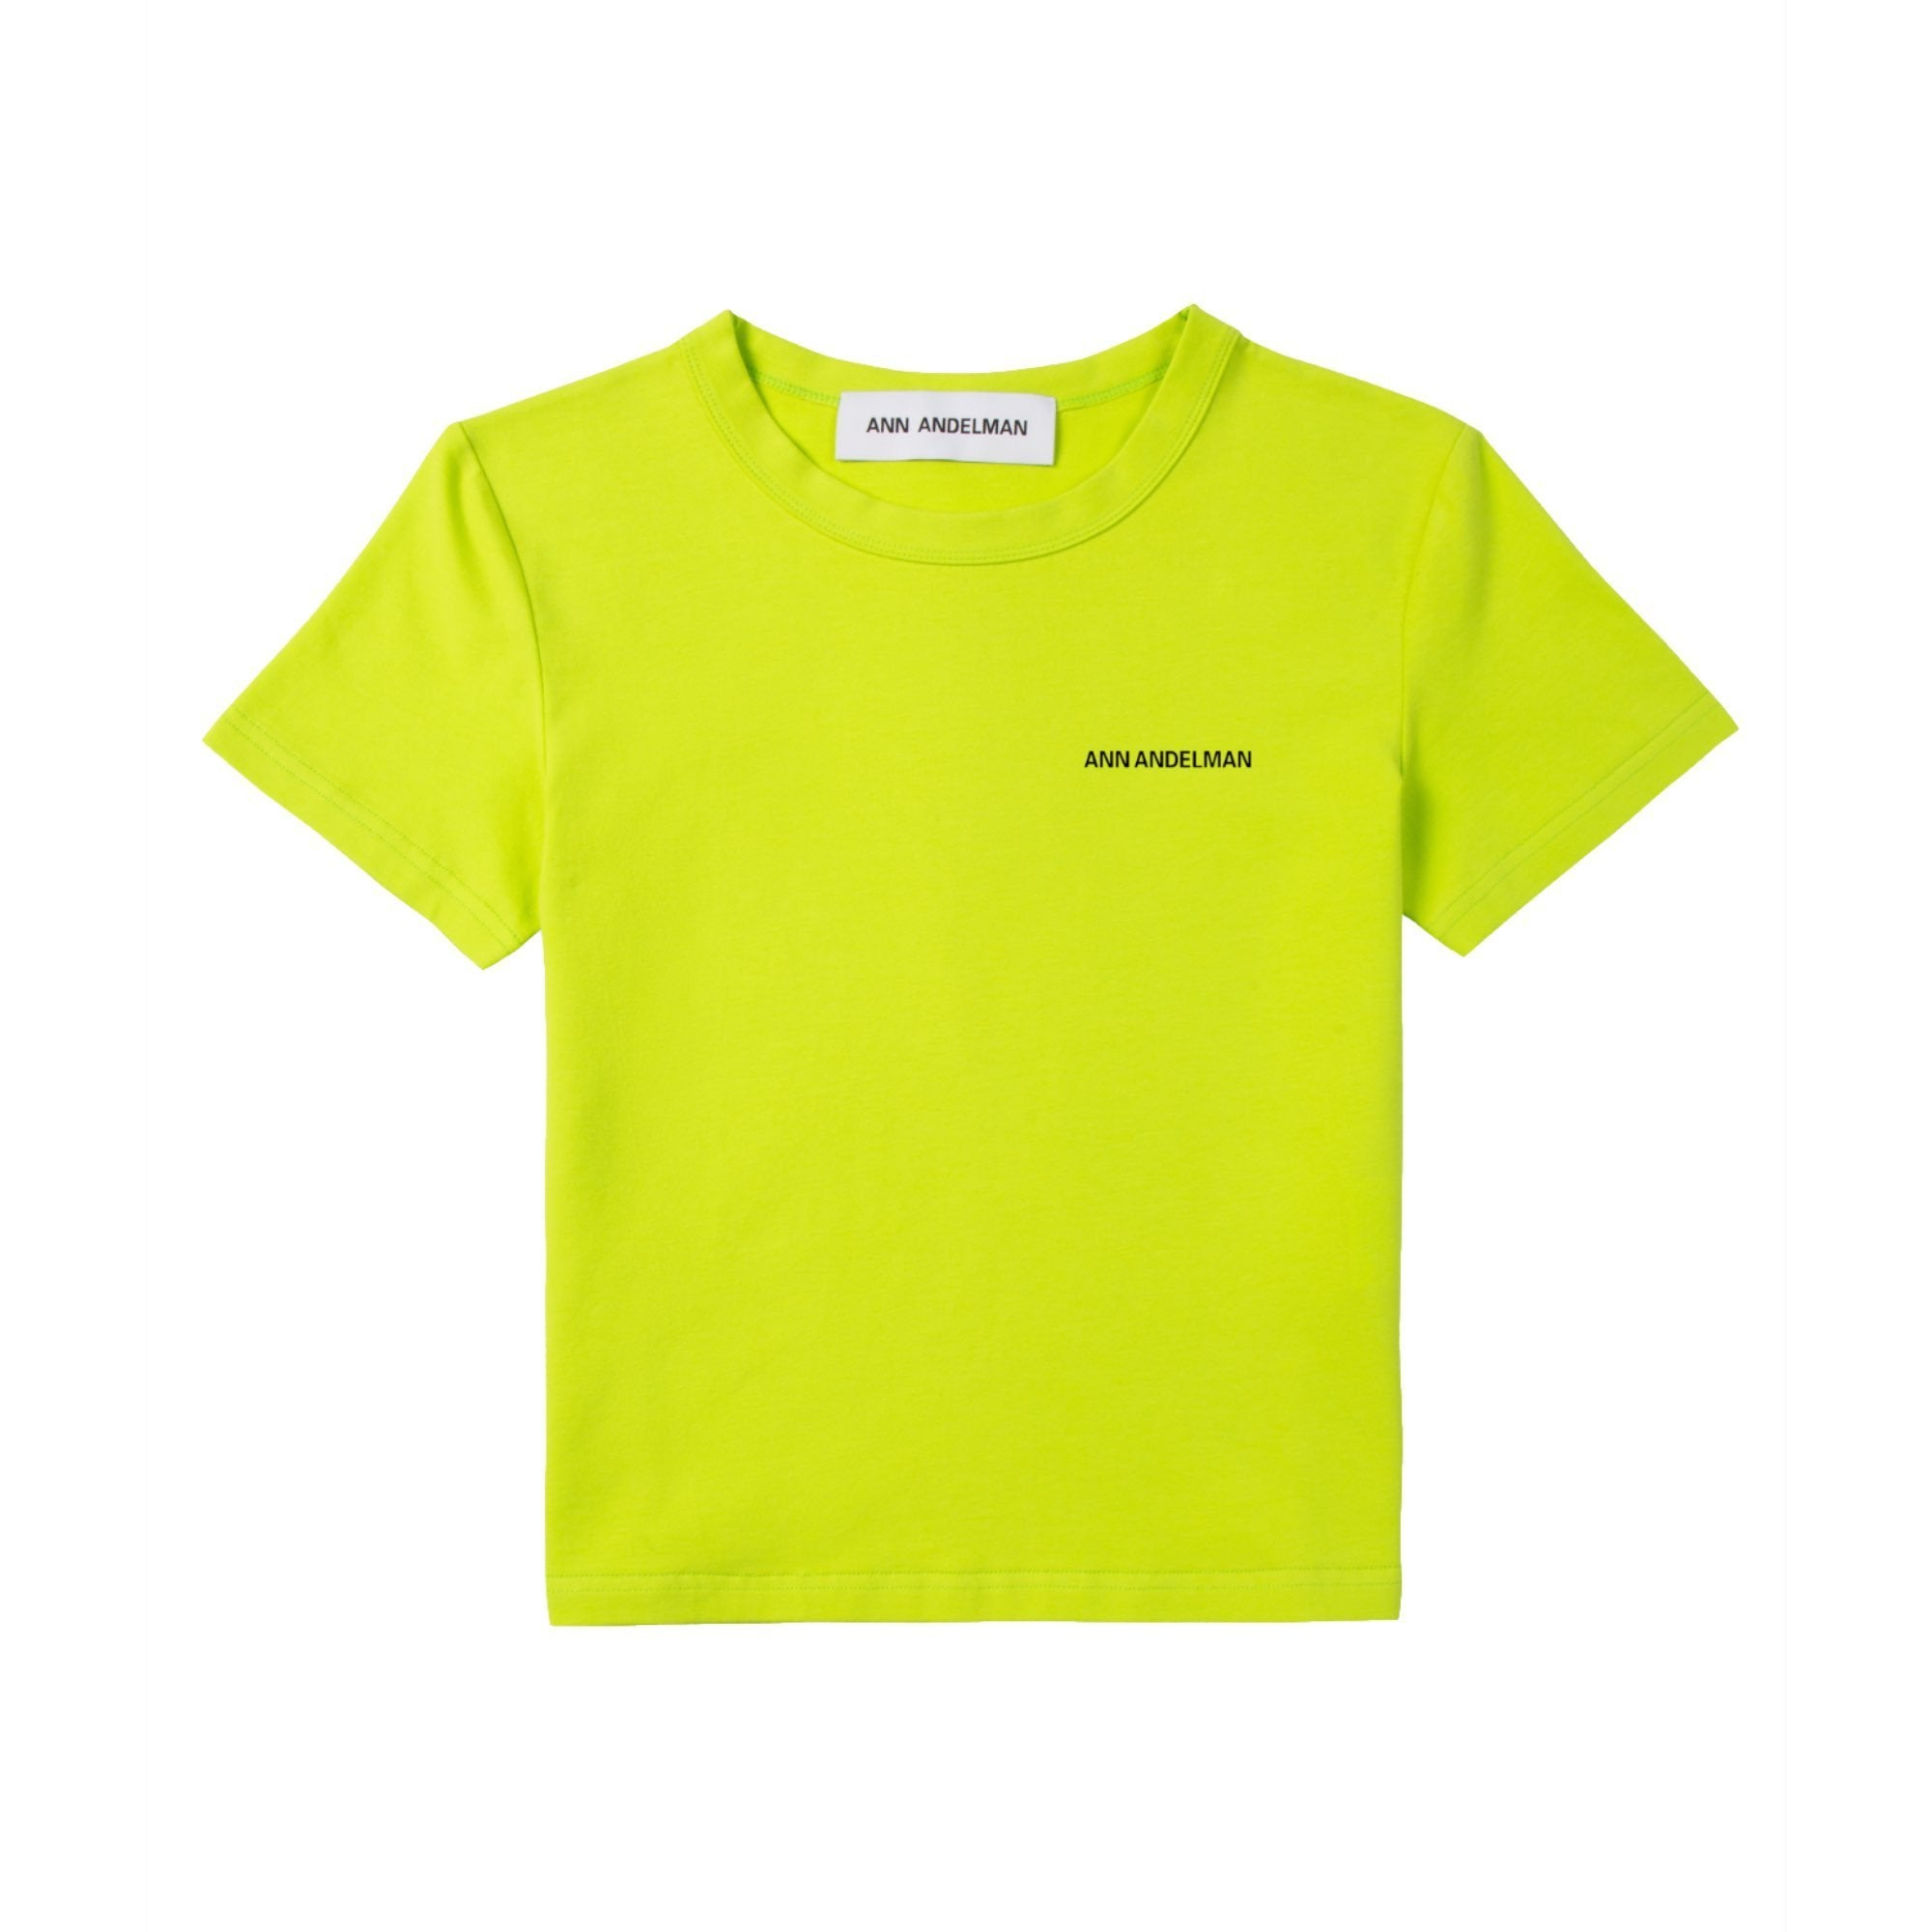 ANN ANDELMAN Yellow Small Logo Tee | MADA IN CHINA